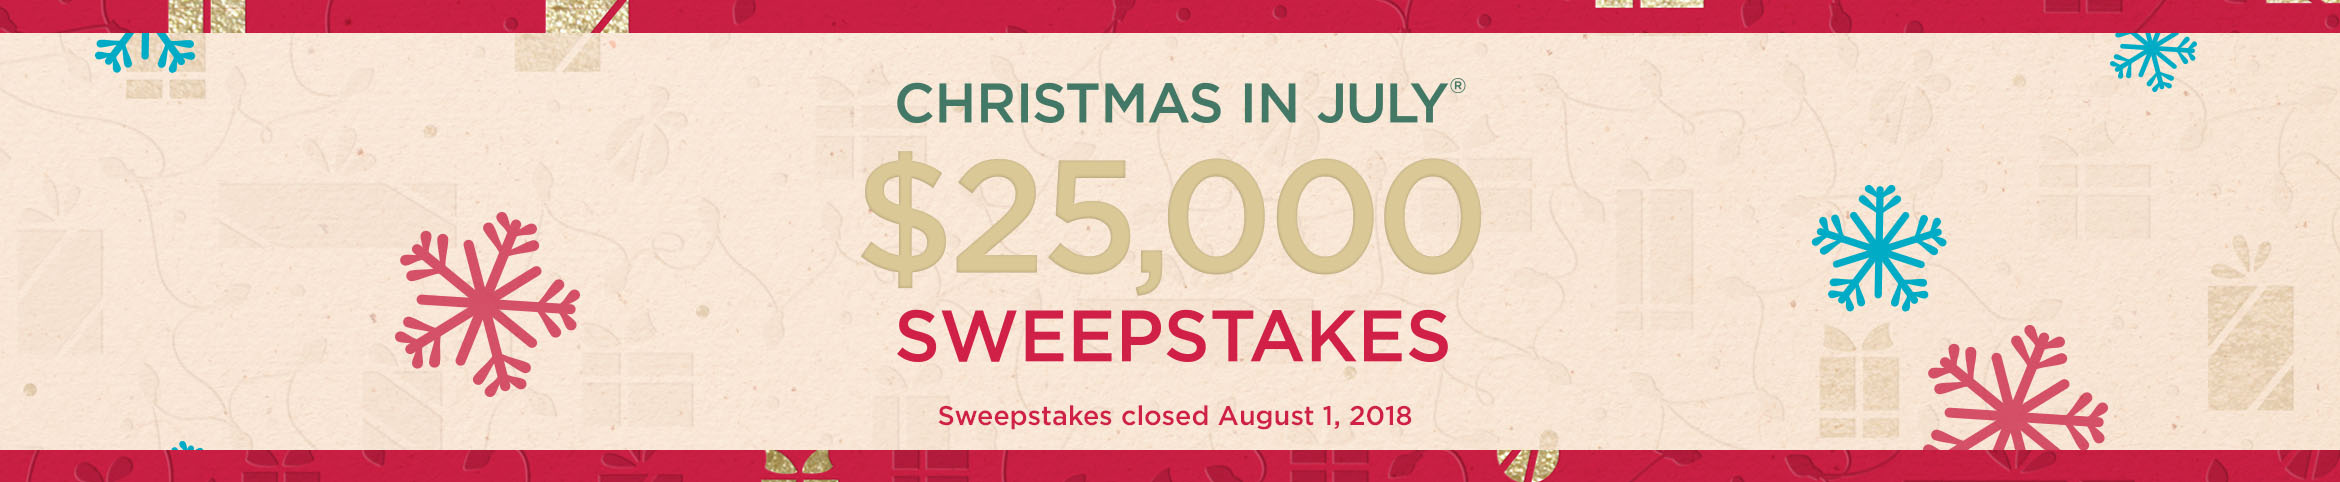 CIJ Sweeps logo  Sweepstakes closed August 1, 2018